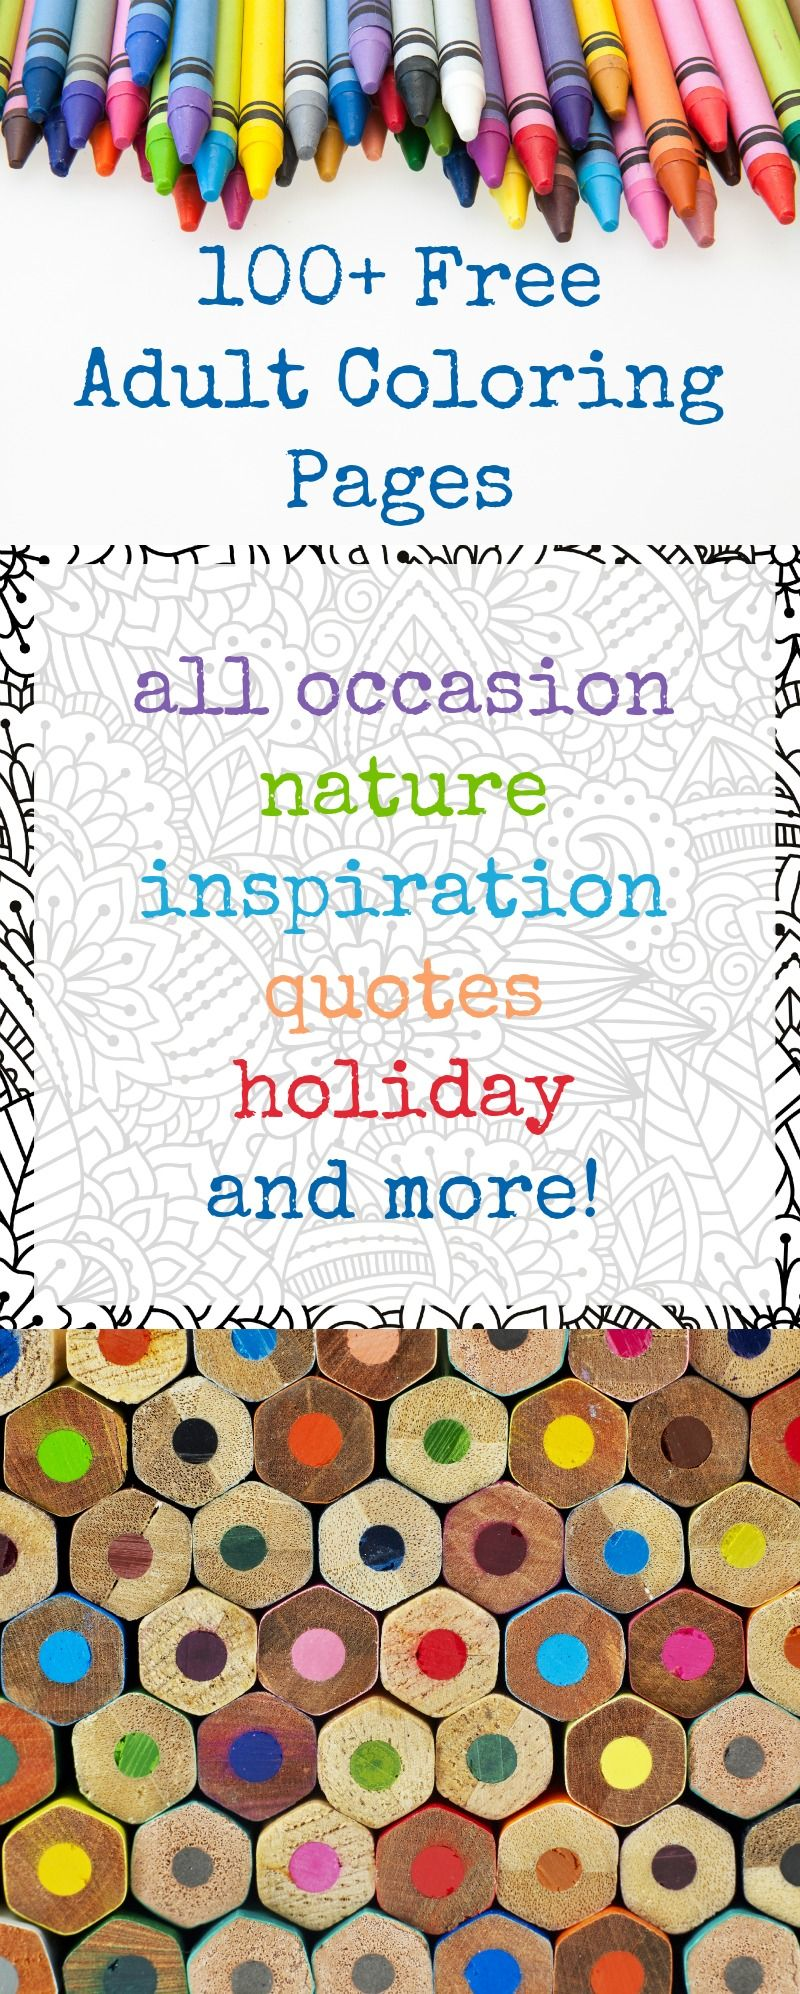 Free coloring pages for adults inspirational - Get Over 100 Free Coloring Pages You Ll Love These Favorites Including All Occasion